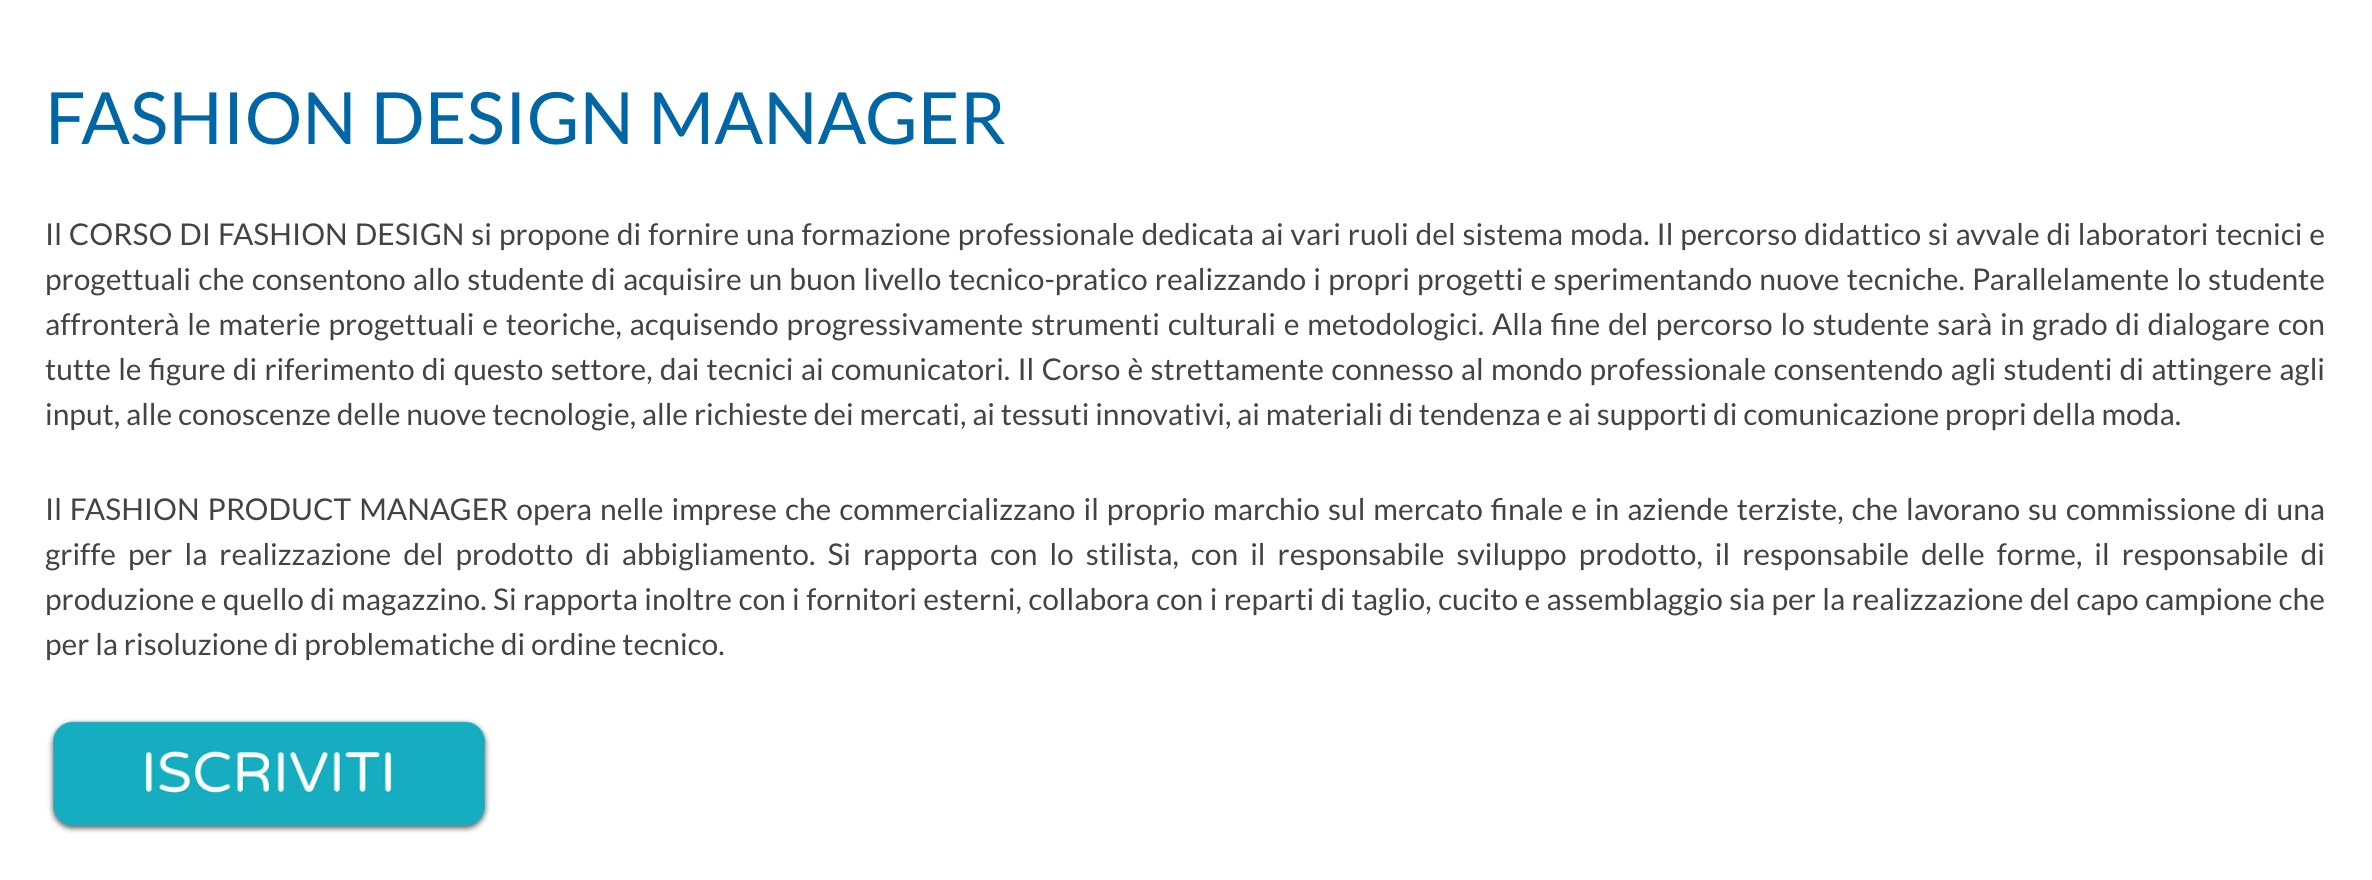 fashiodesignmanager